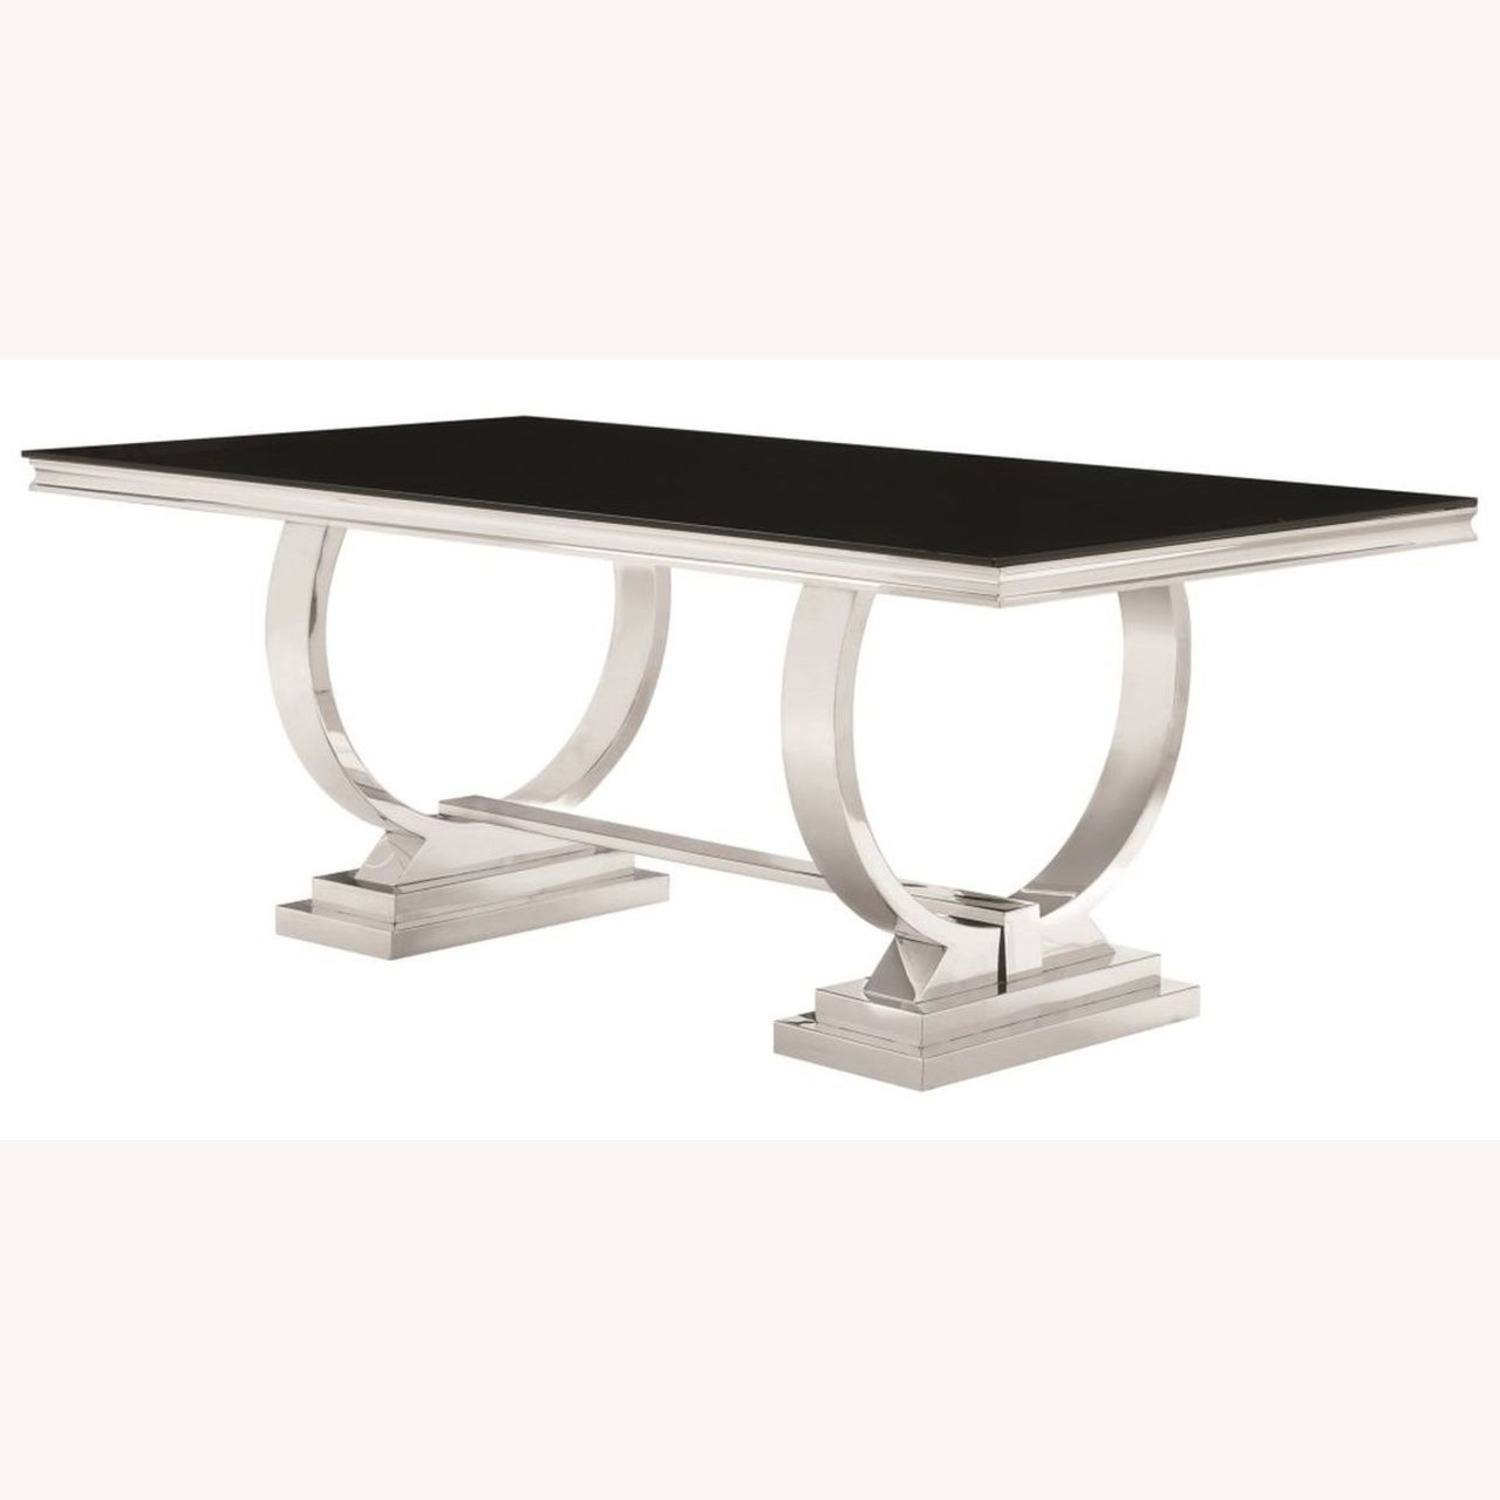 Modern Dining Table In Chrome Finish - image-1